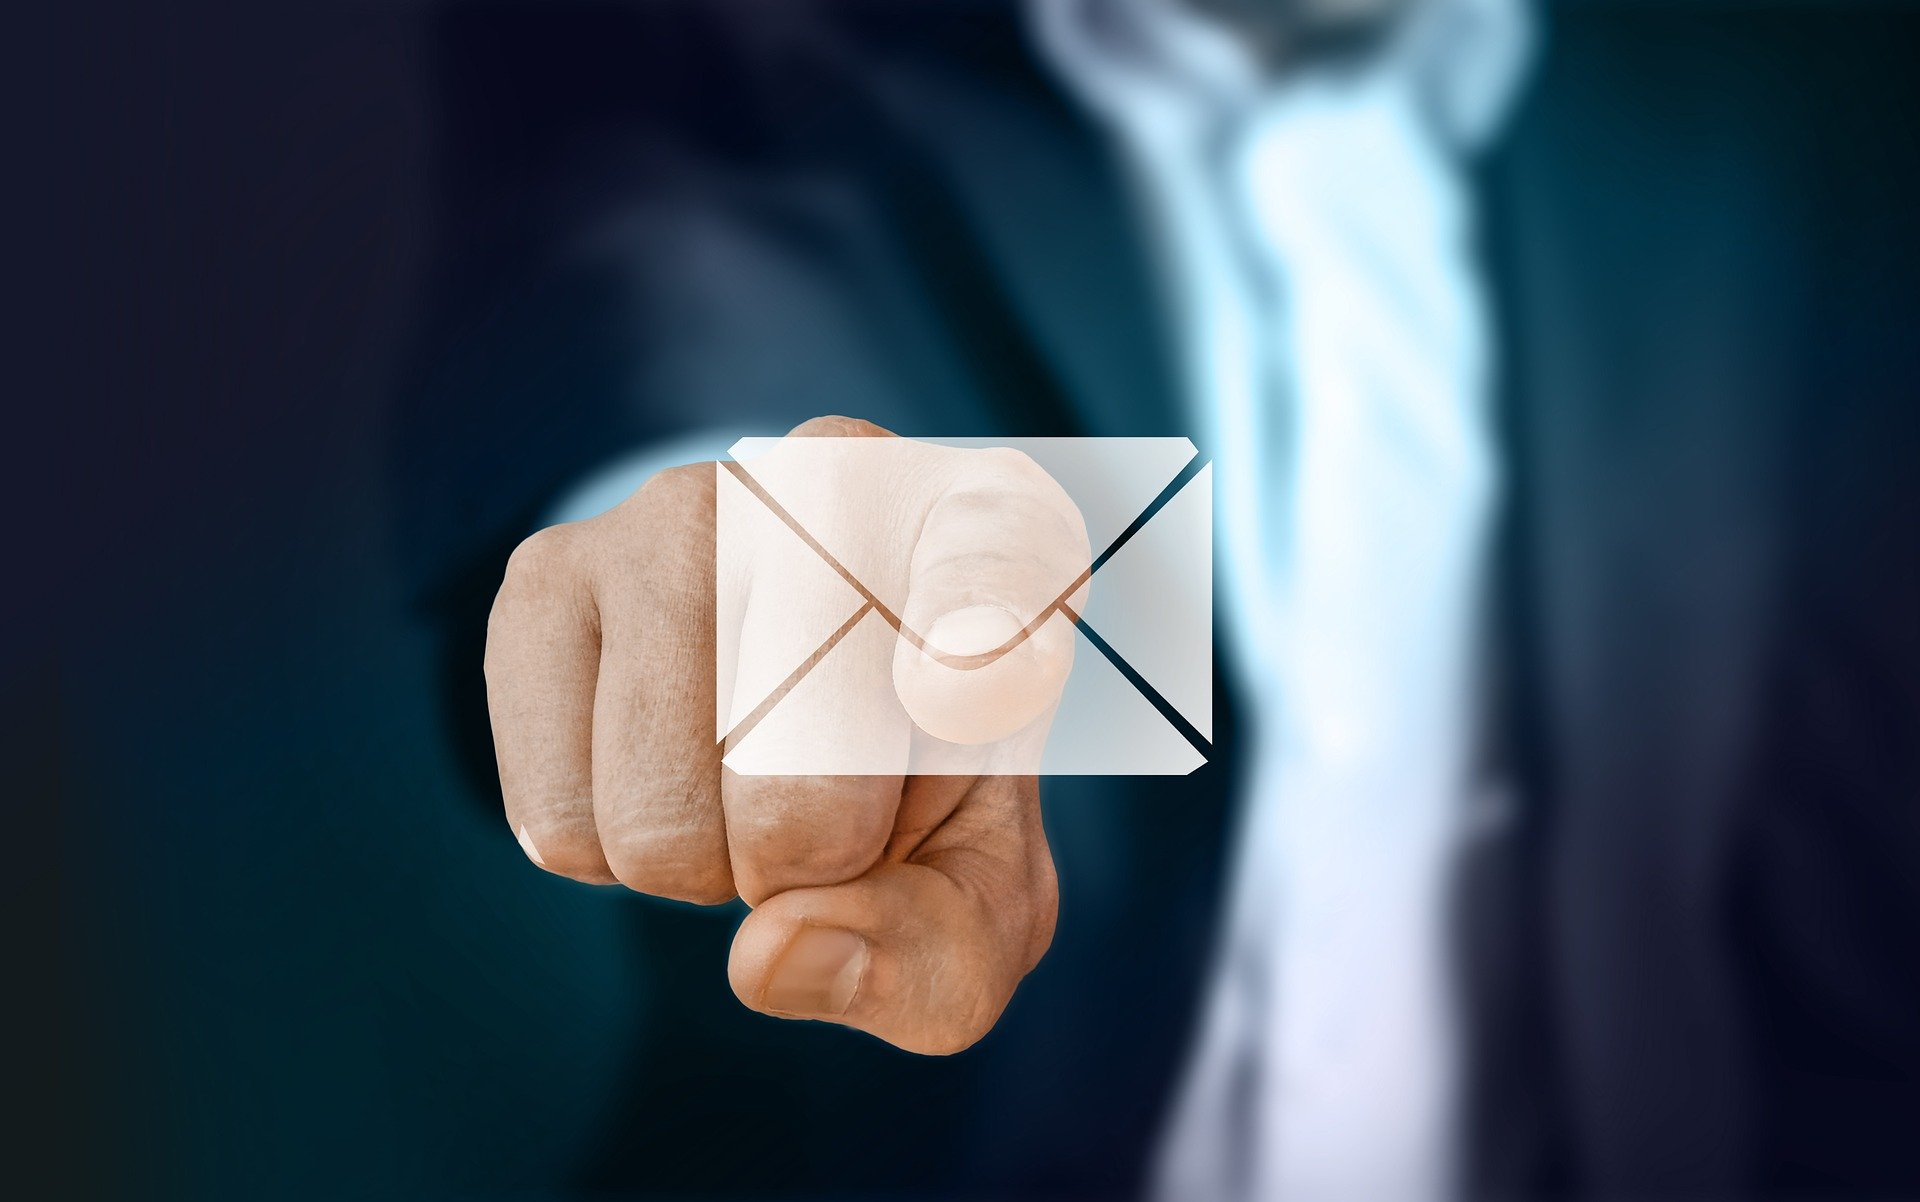 Business man pointing to an image overlay of an envelope